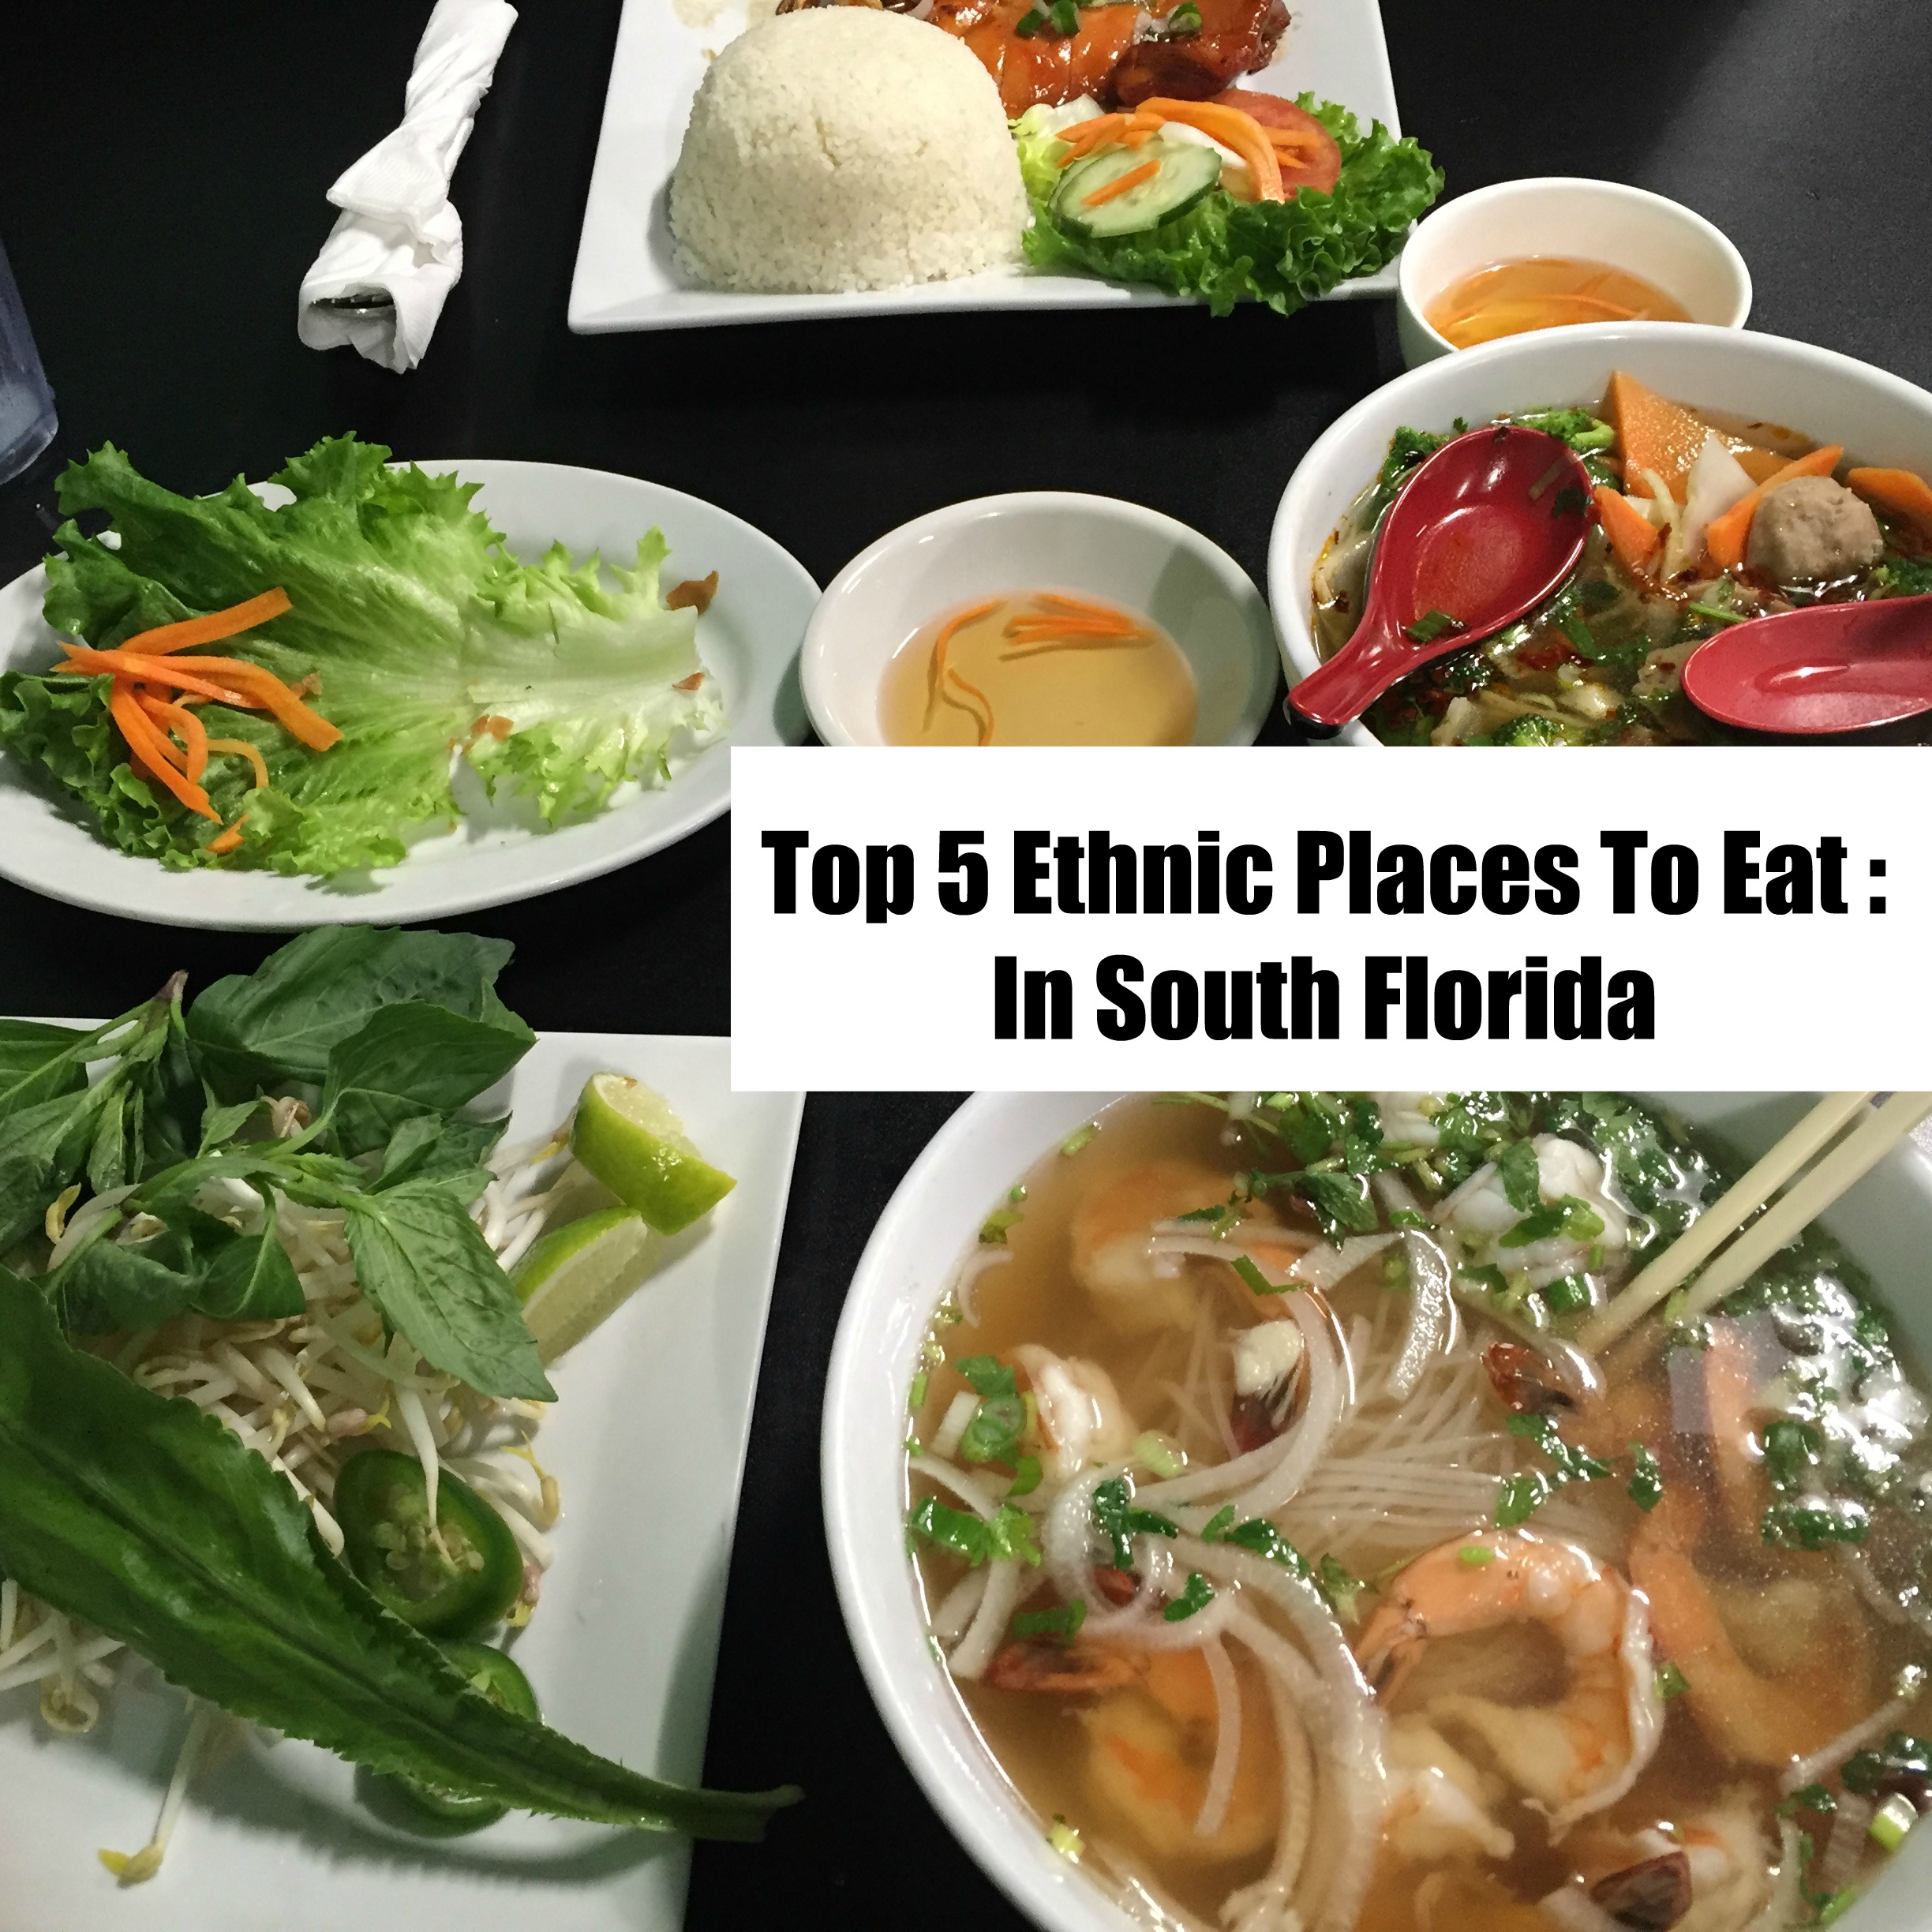 5 Ethnic Places To Eat : In South Florida